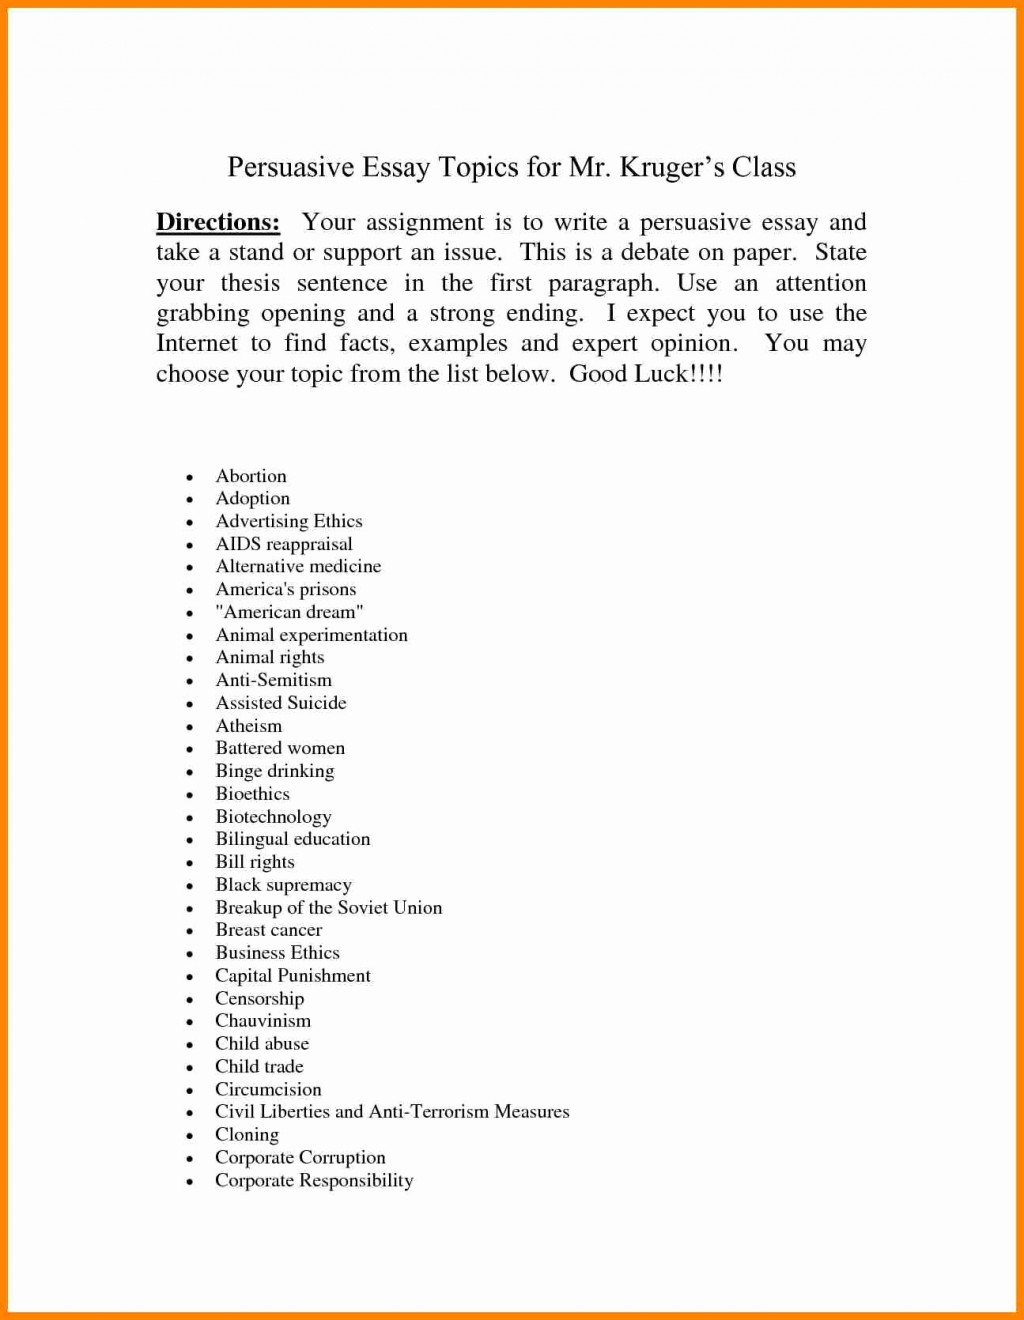 003 Essay Example Topics For Persuasive An Of Censorship Music About Speech Rap Research Paper Argumentative Interesting Breathtaking A Best Top 10 Controversial Large